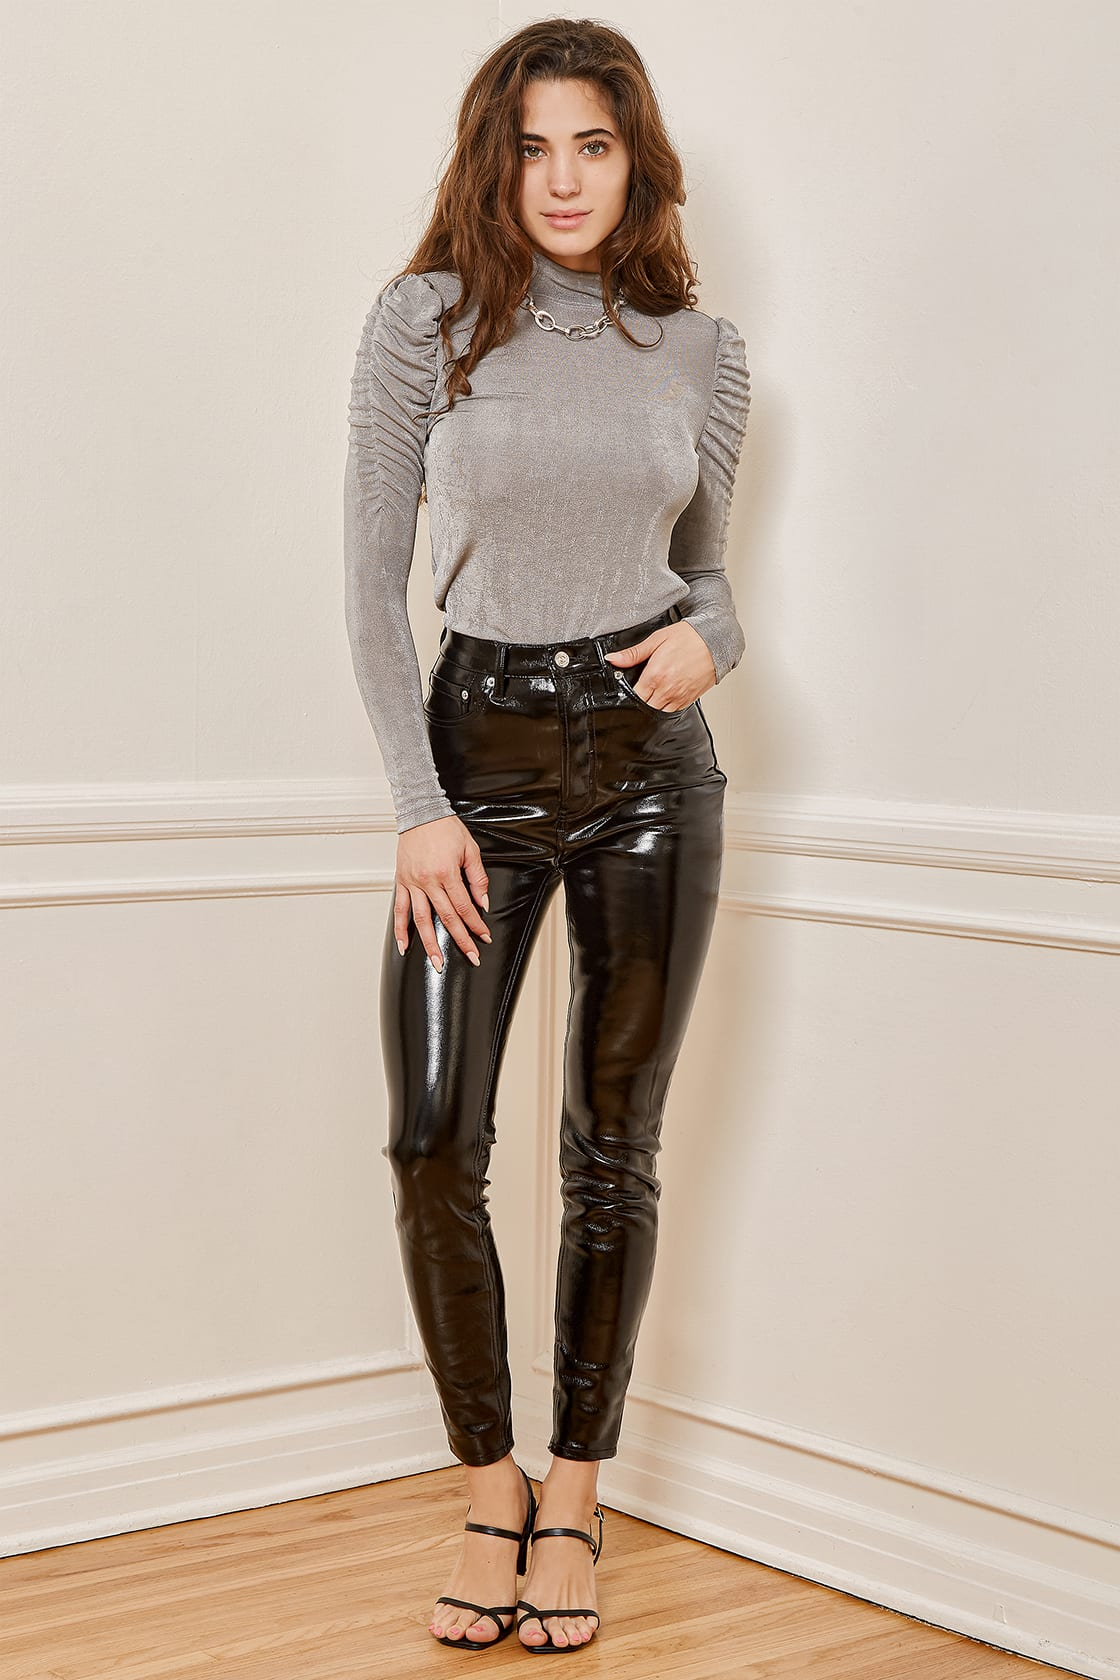 , 5 Sexy Latex Pants Under $130 That Look Just Like Kylie Jenner's, Indian & World Live Breaking News Coverage And Updates